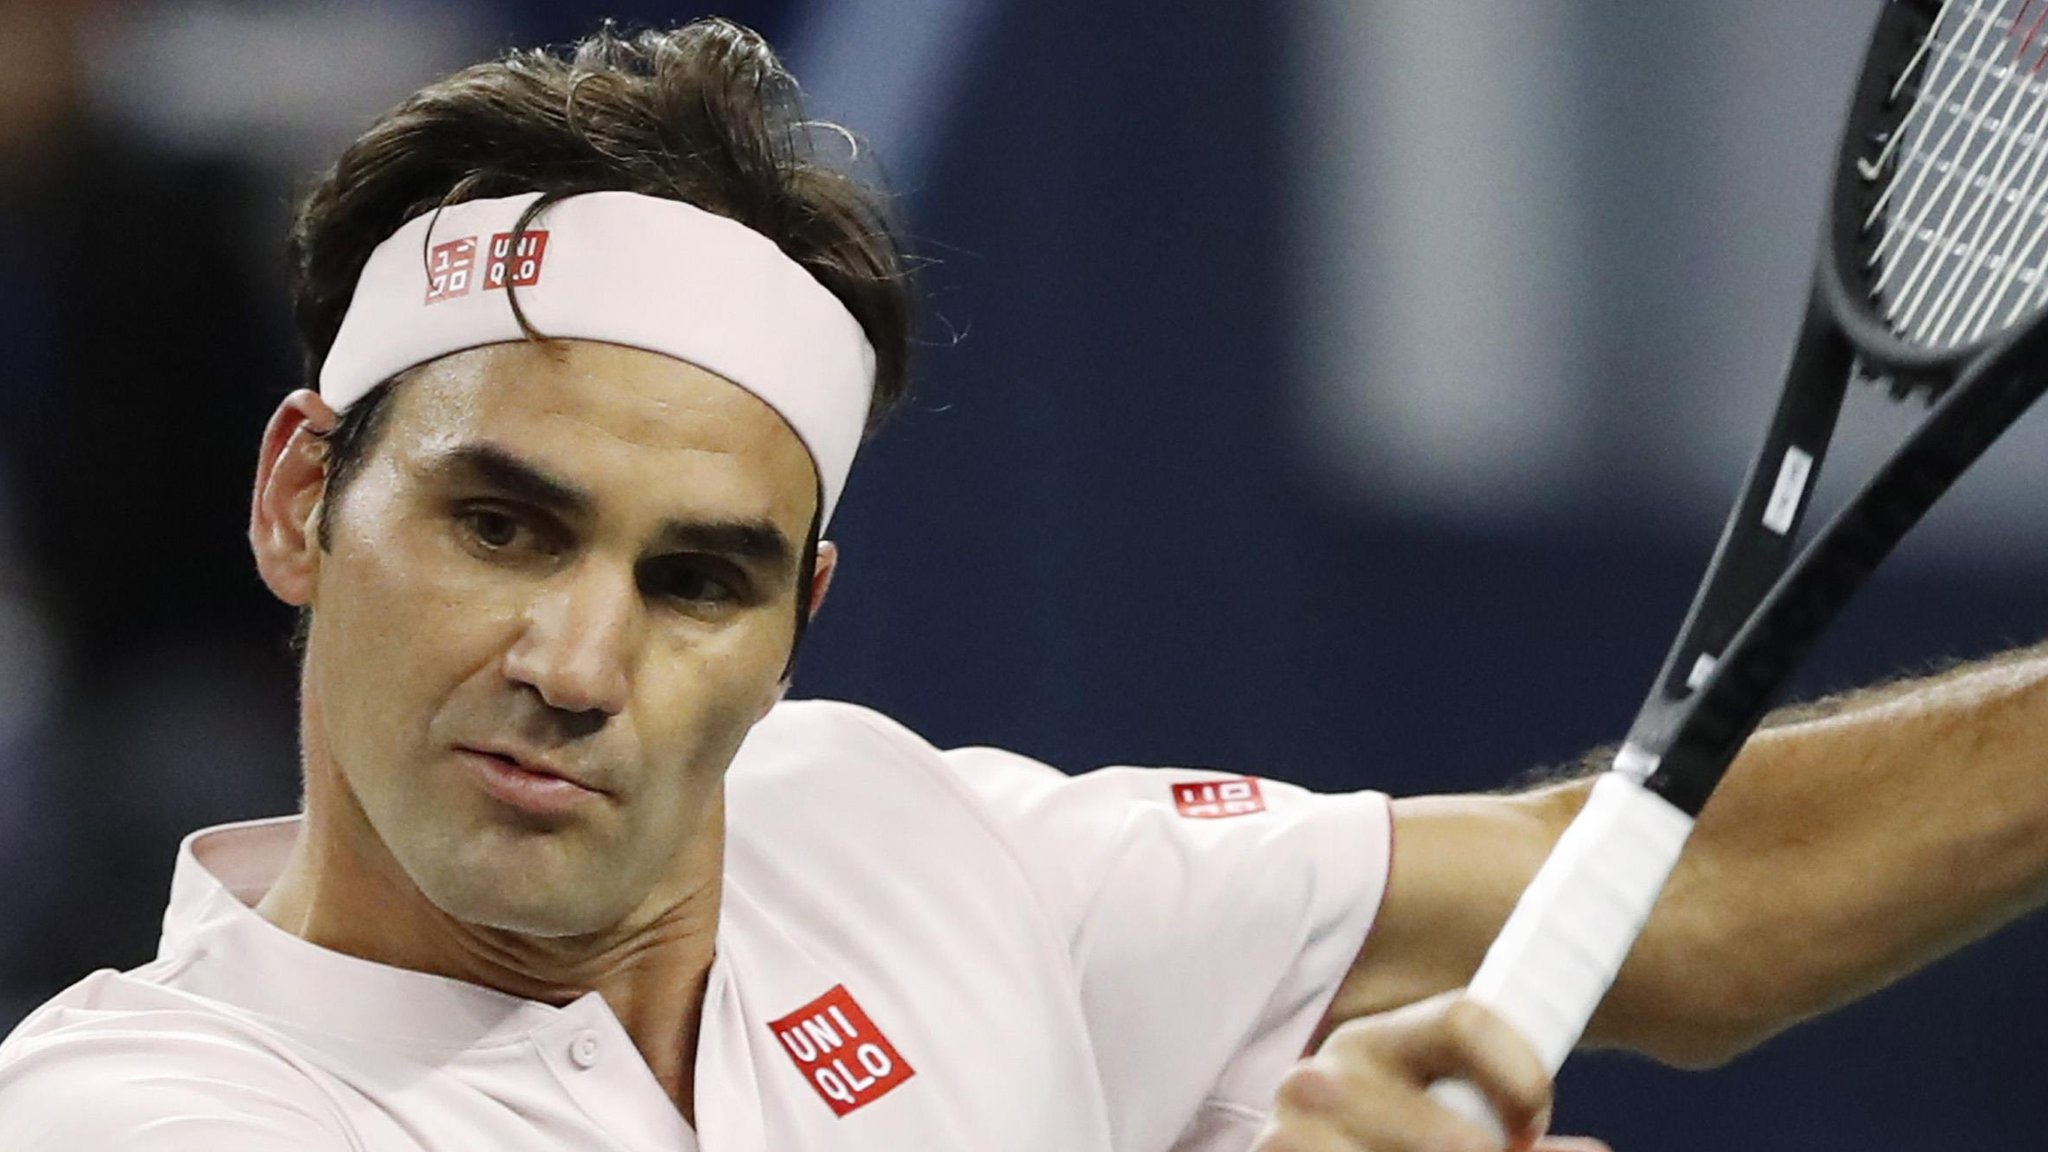 Federer loses as Djokovic reaches Shanghai final